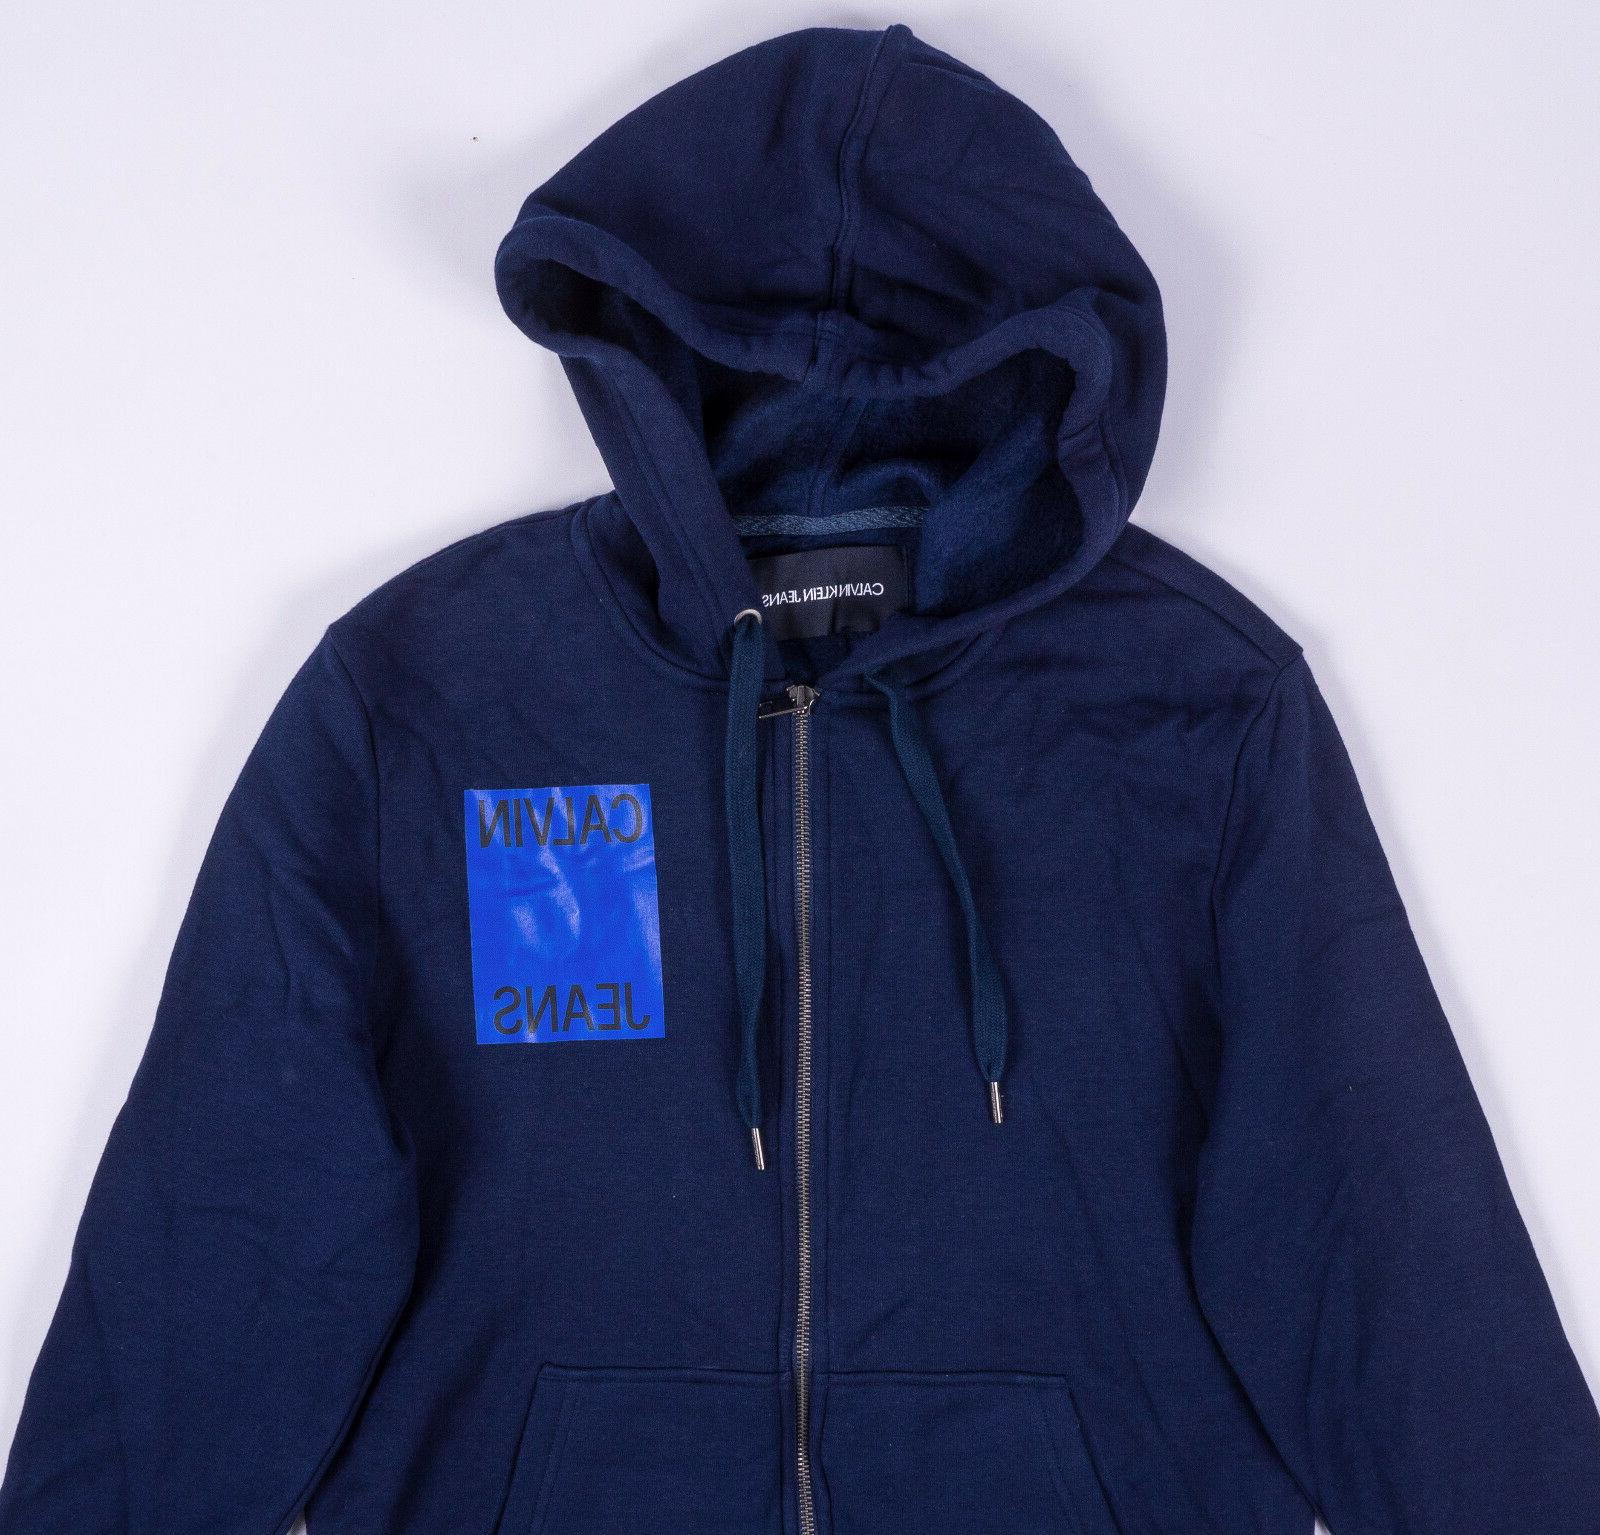 BNWT JEANS FRONT HOODIE M